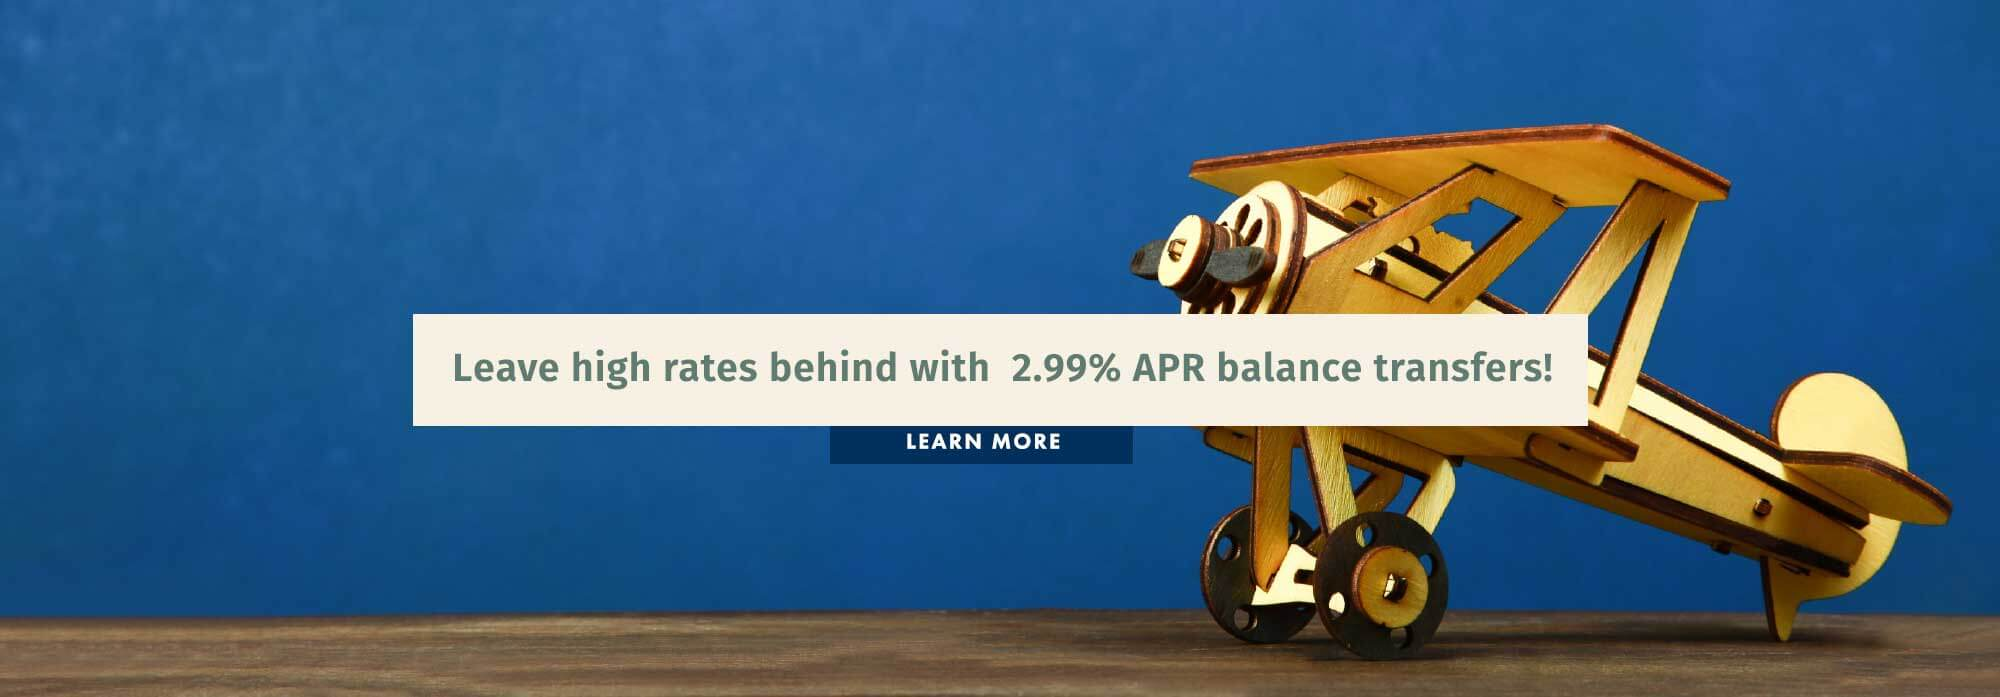 Leave high rates behind with 2.99% APR balance transfers! Learn More